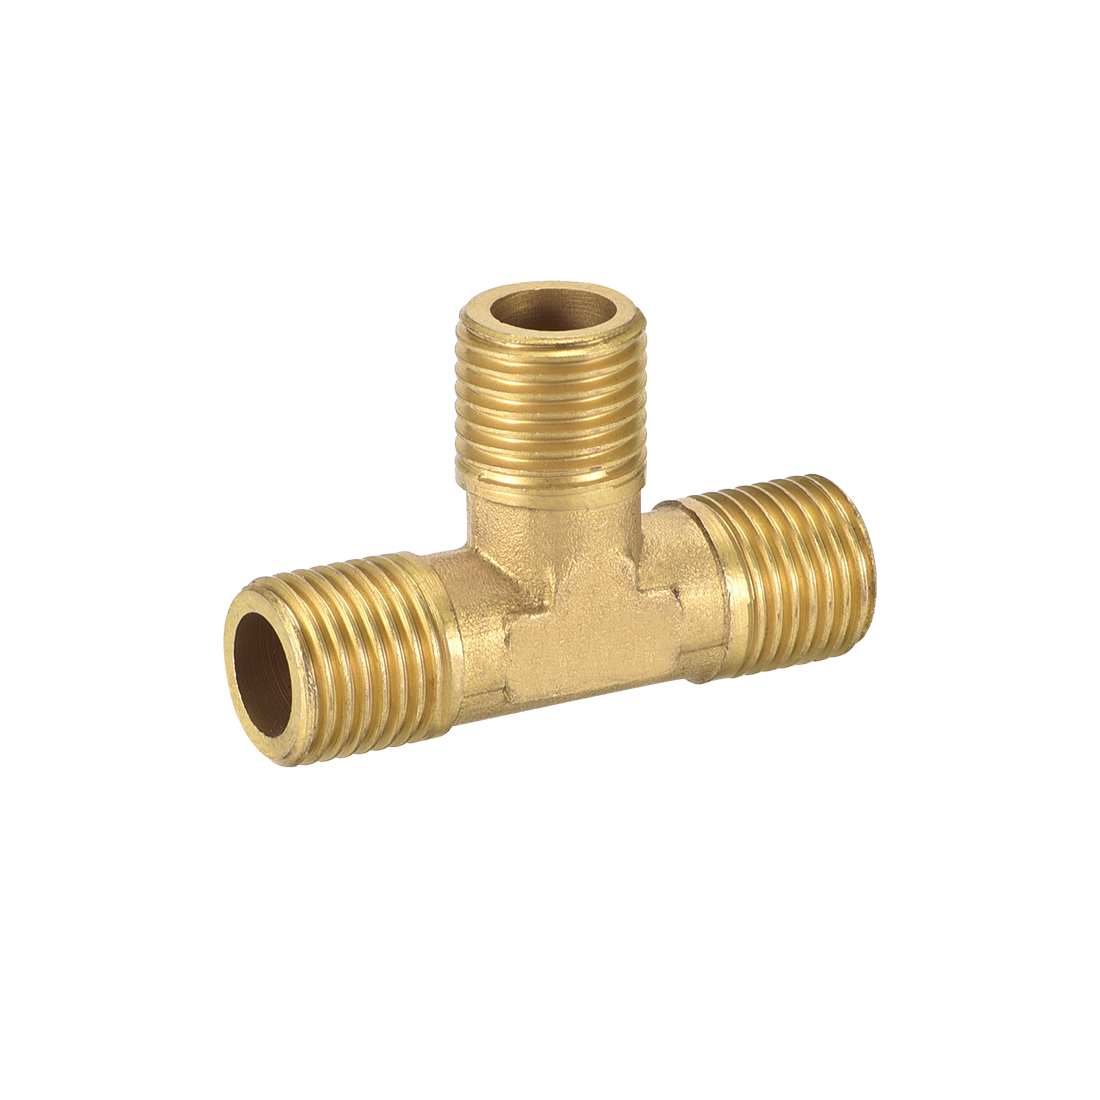 Brass Tee Pipe Fitting 1/4BSP Male Thread T Shaped Connector Coupler